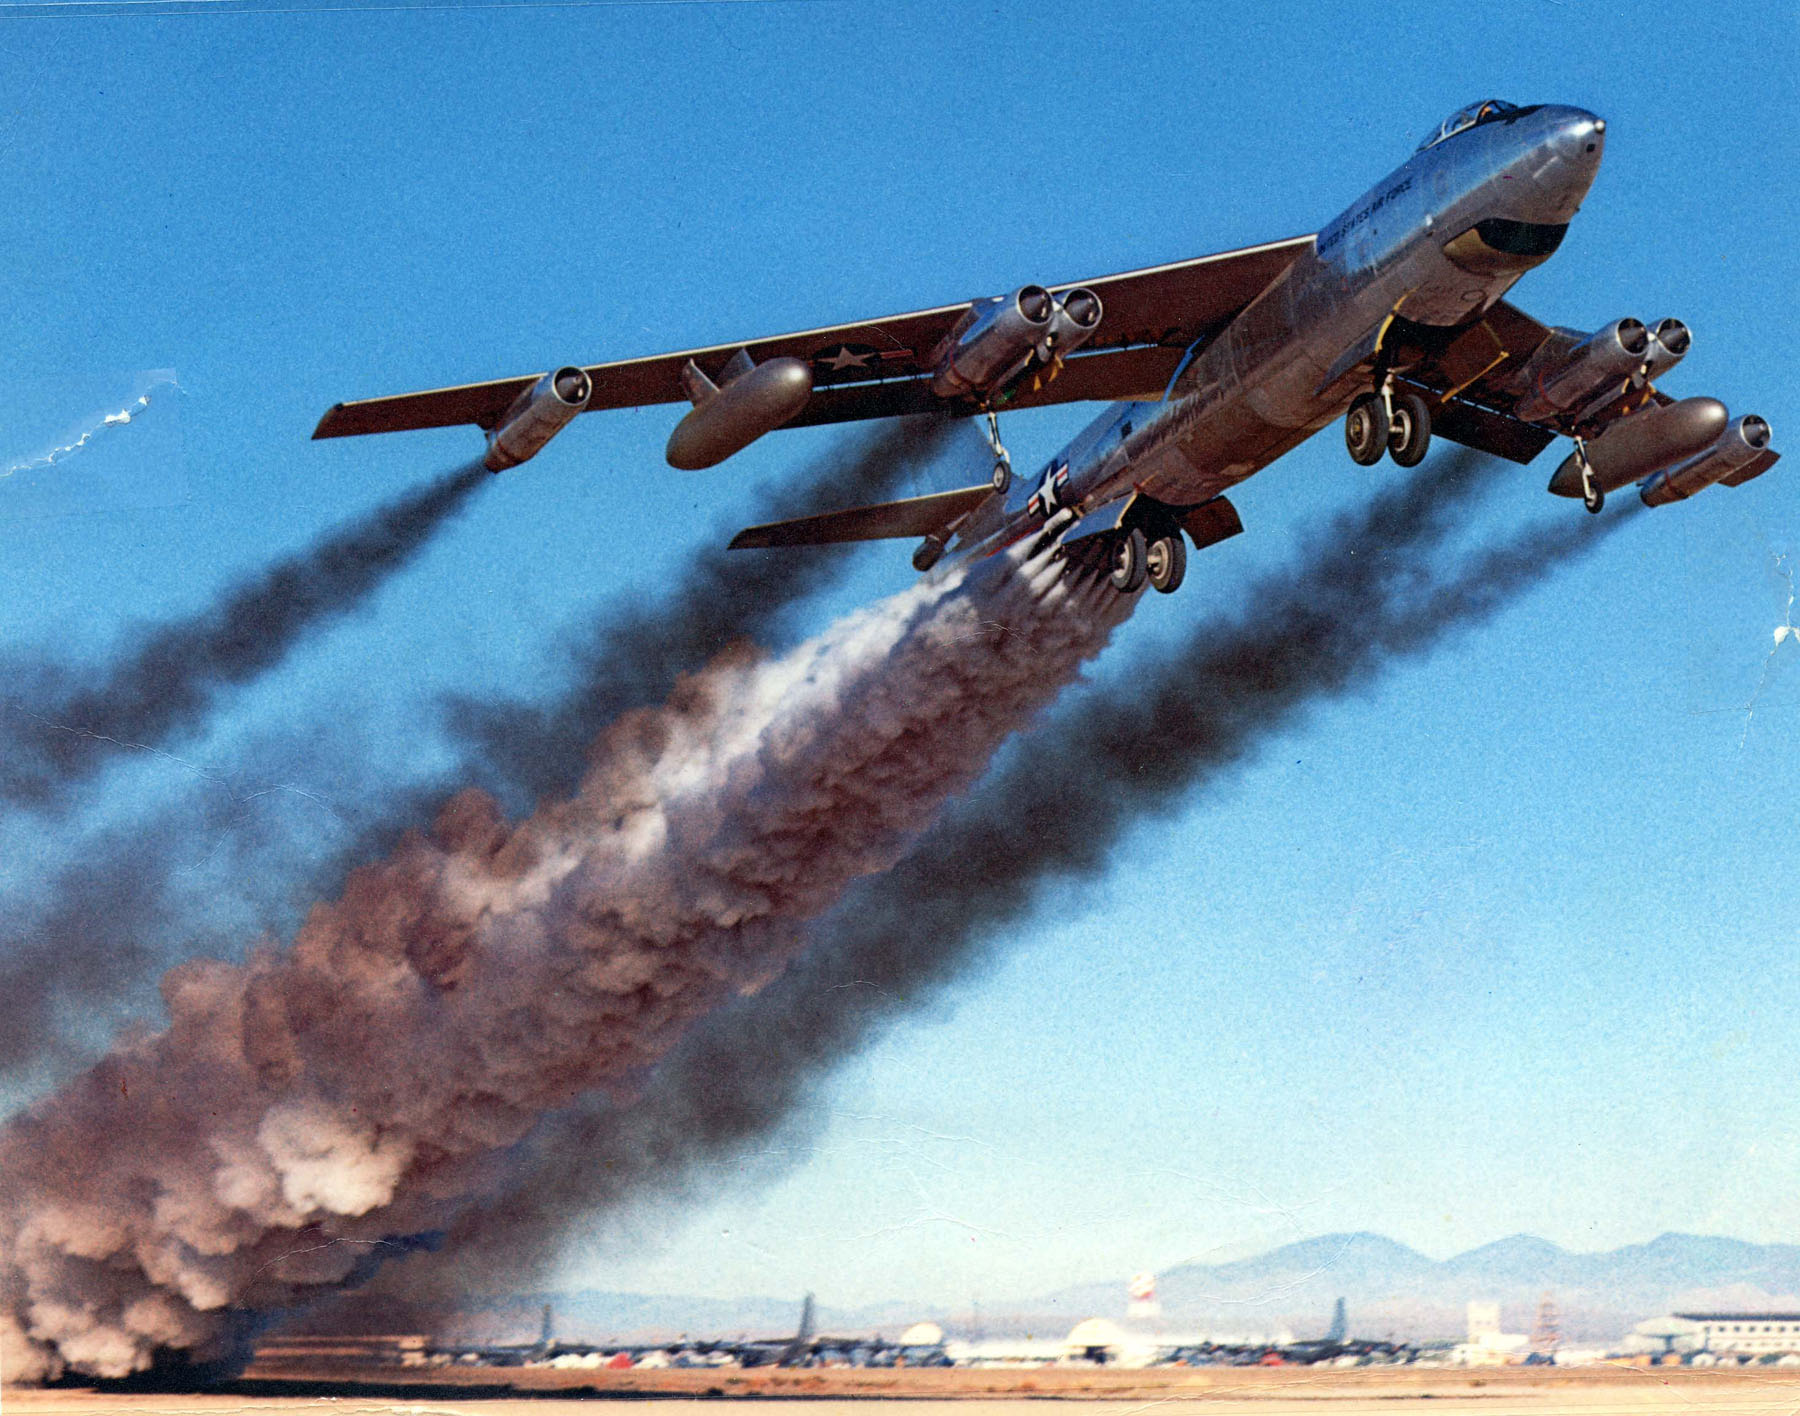 Chemtrail Aircraft Photos Contrail Science - 5 minute video explains airplanes made